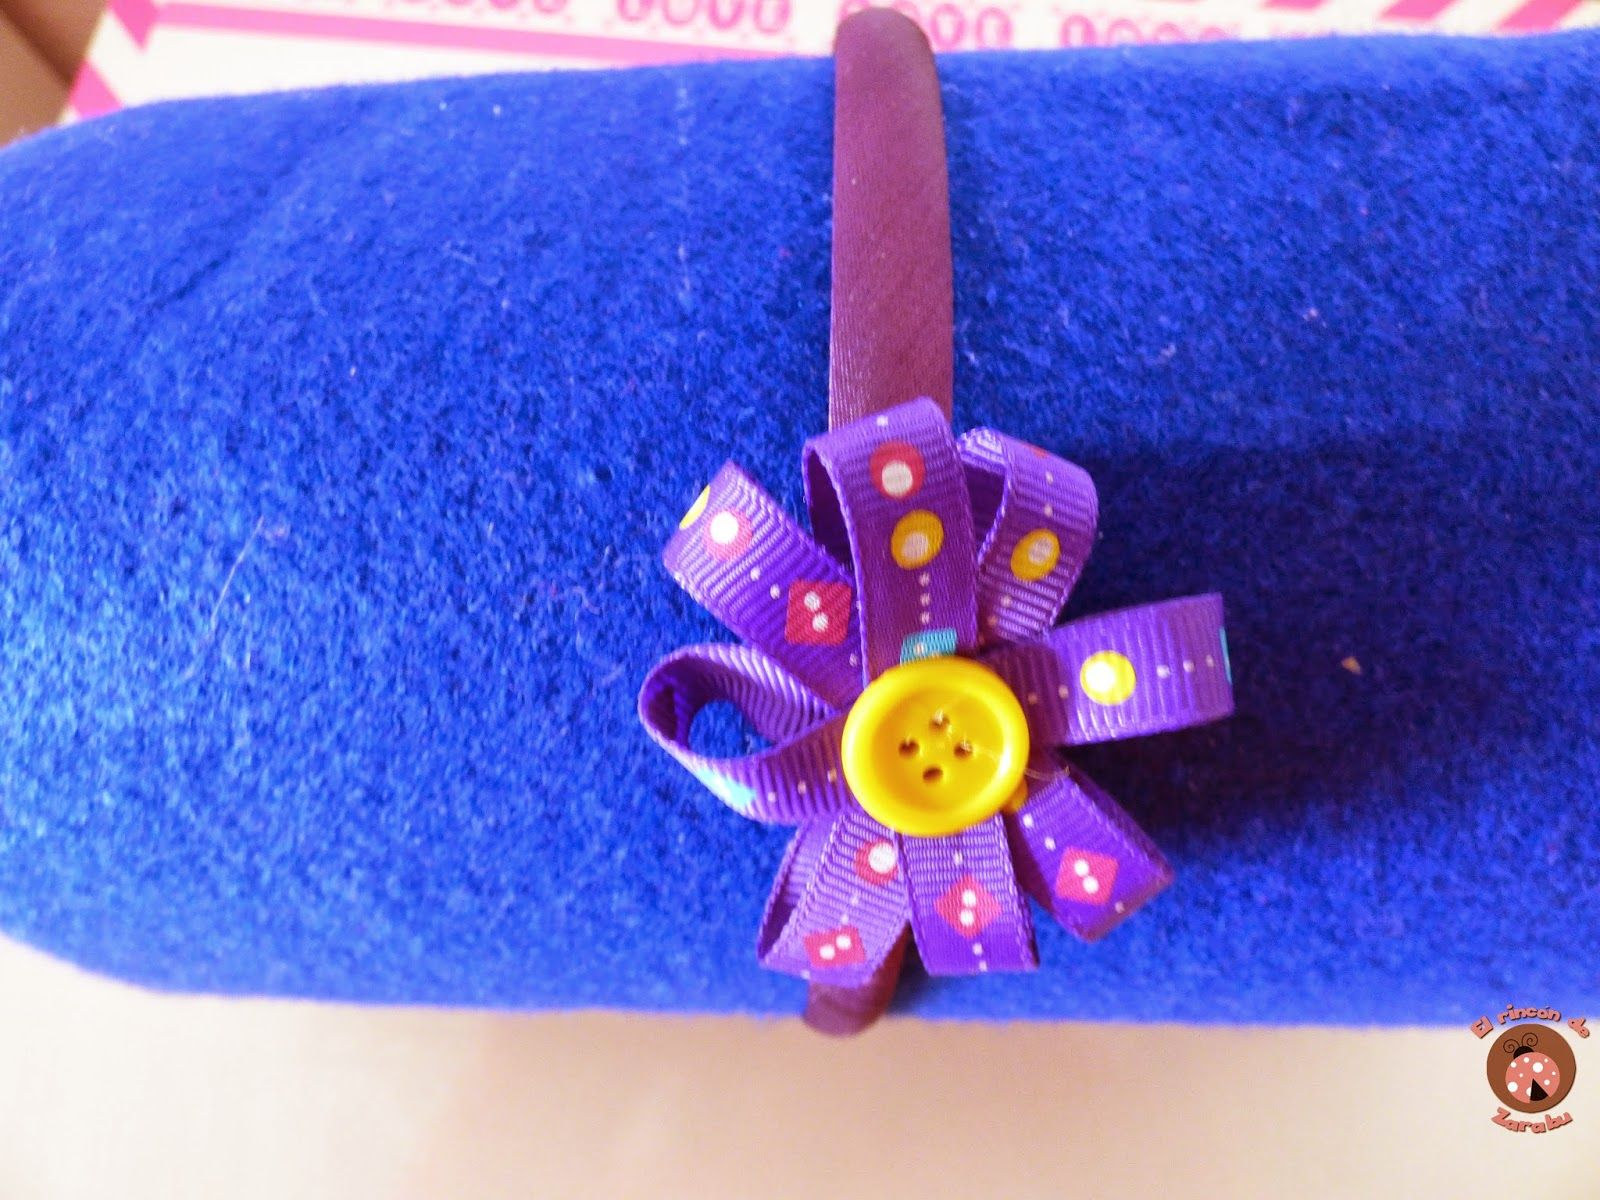 Diadema con lazo / Bow hair headband